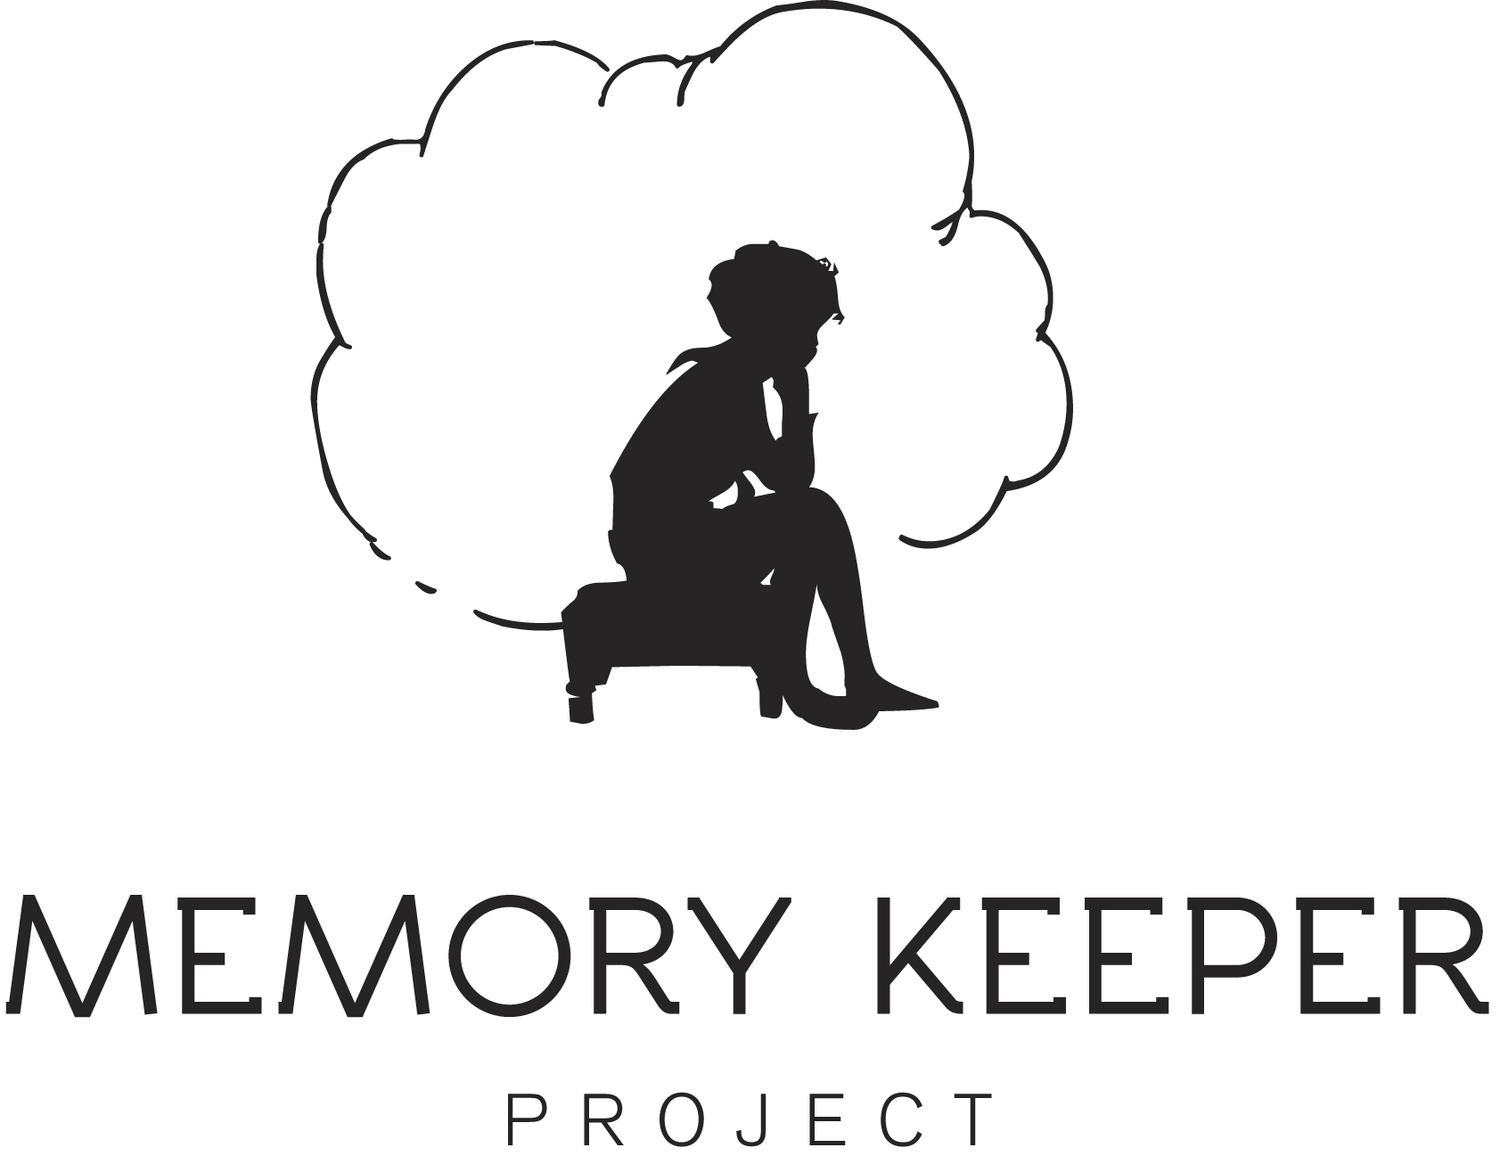 Memory Keeper Project